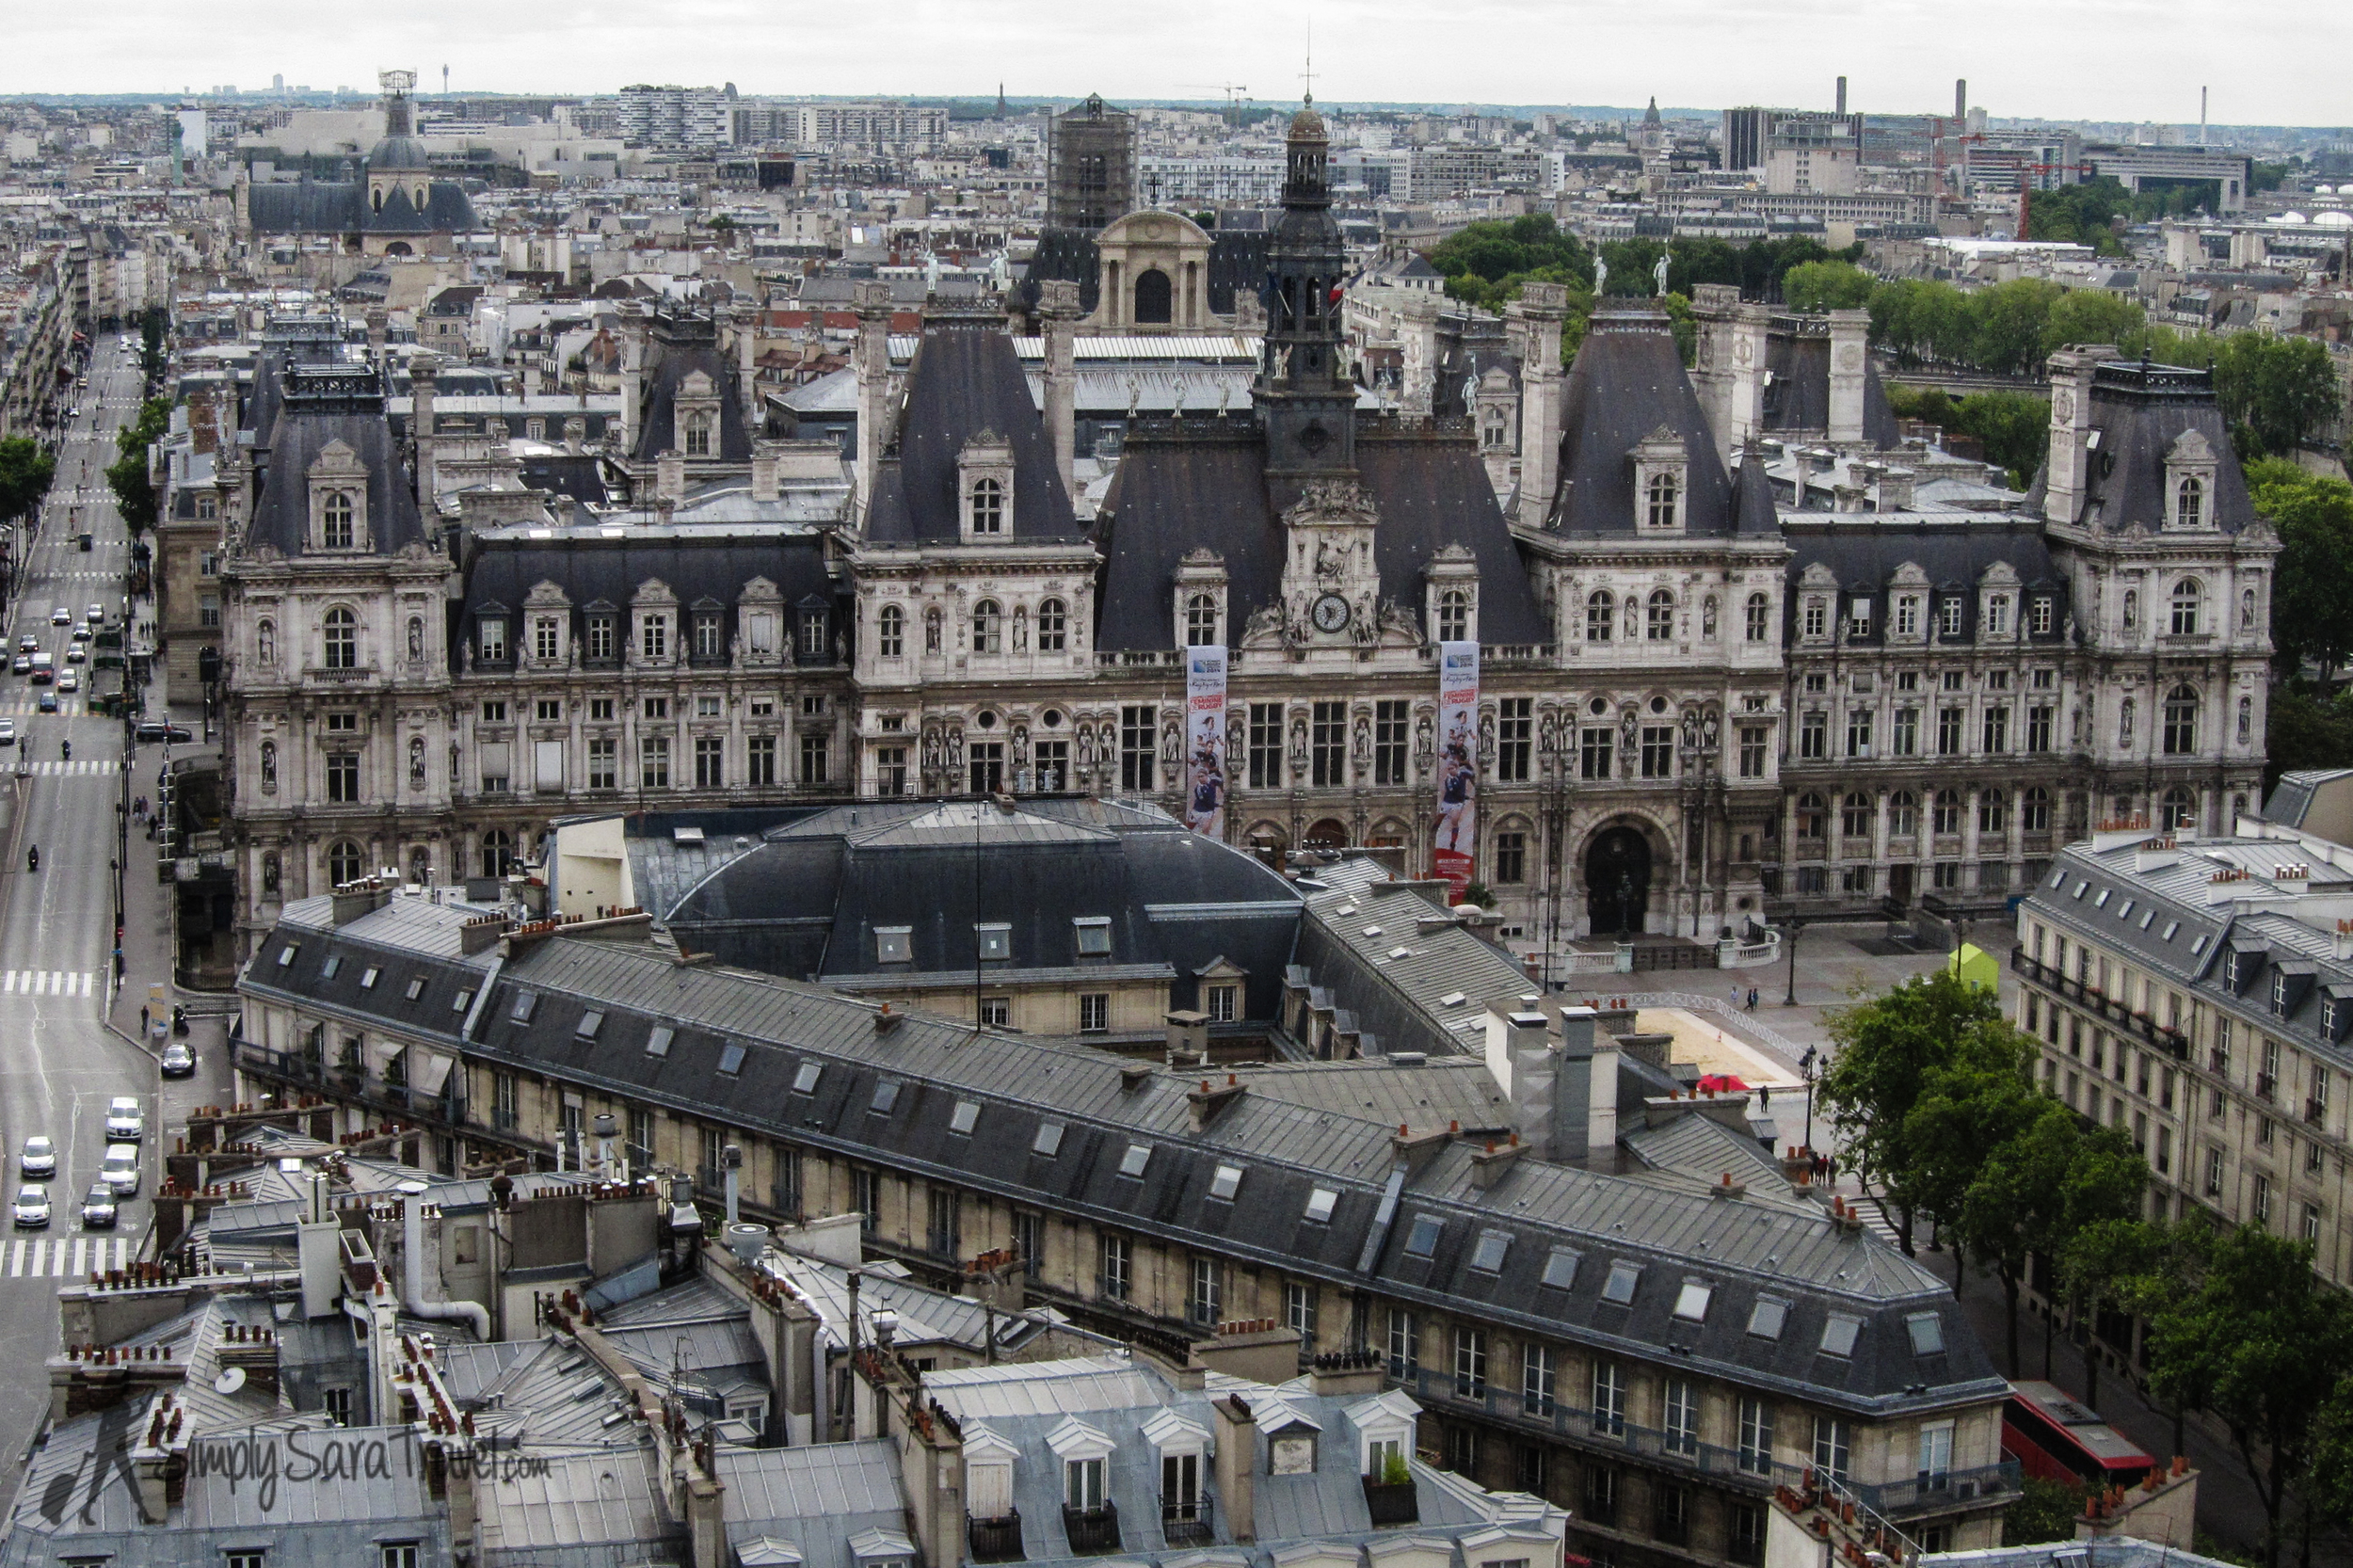 The best view from above that I've gotten of the front ofHôtel de Ville